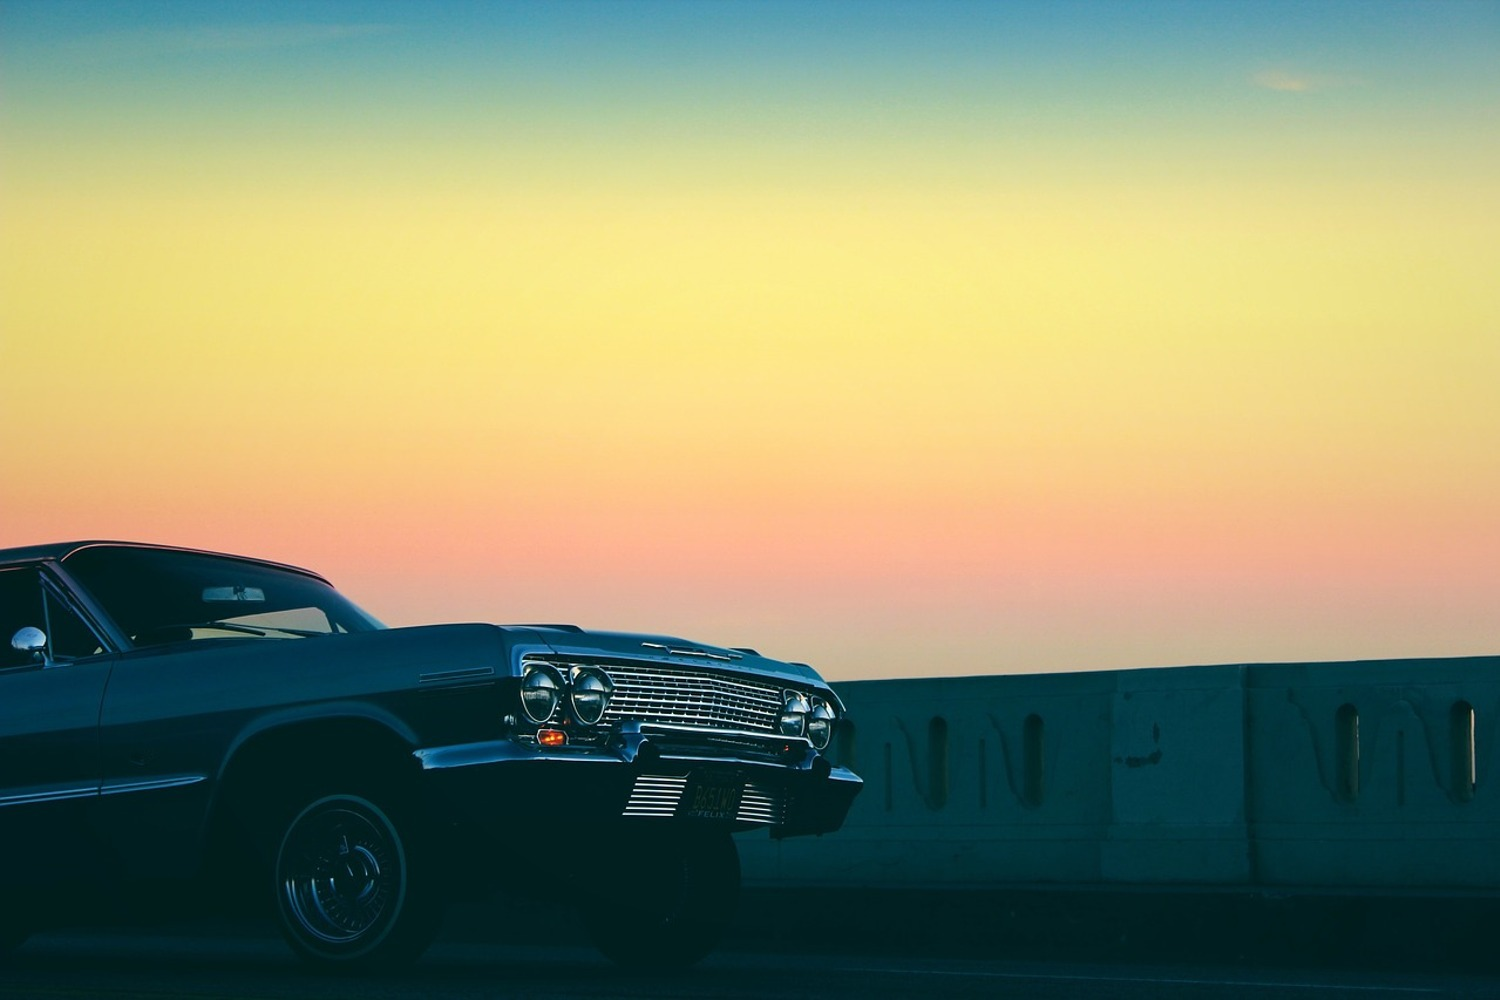 Photo Wallpaper Vintage car in the evening light